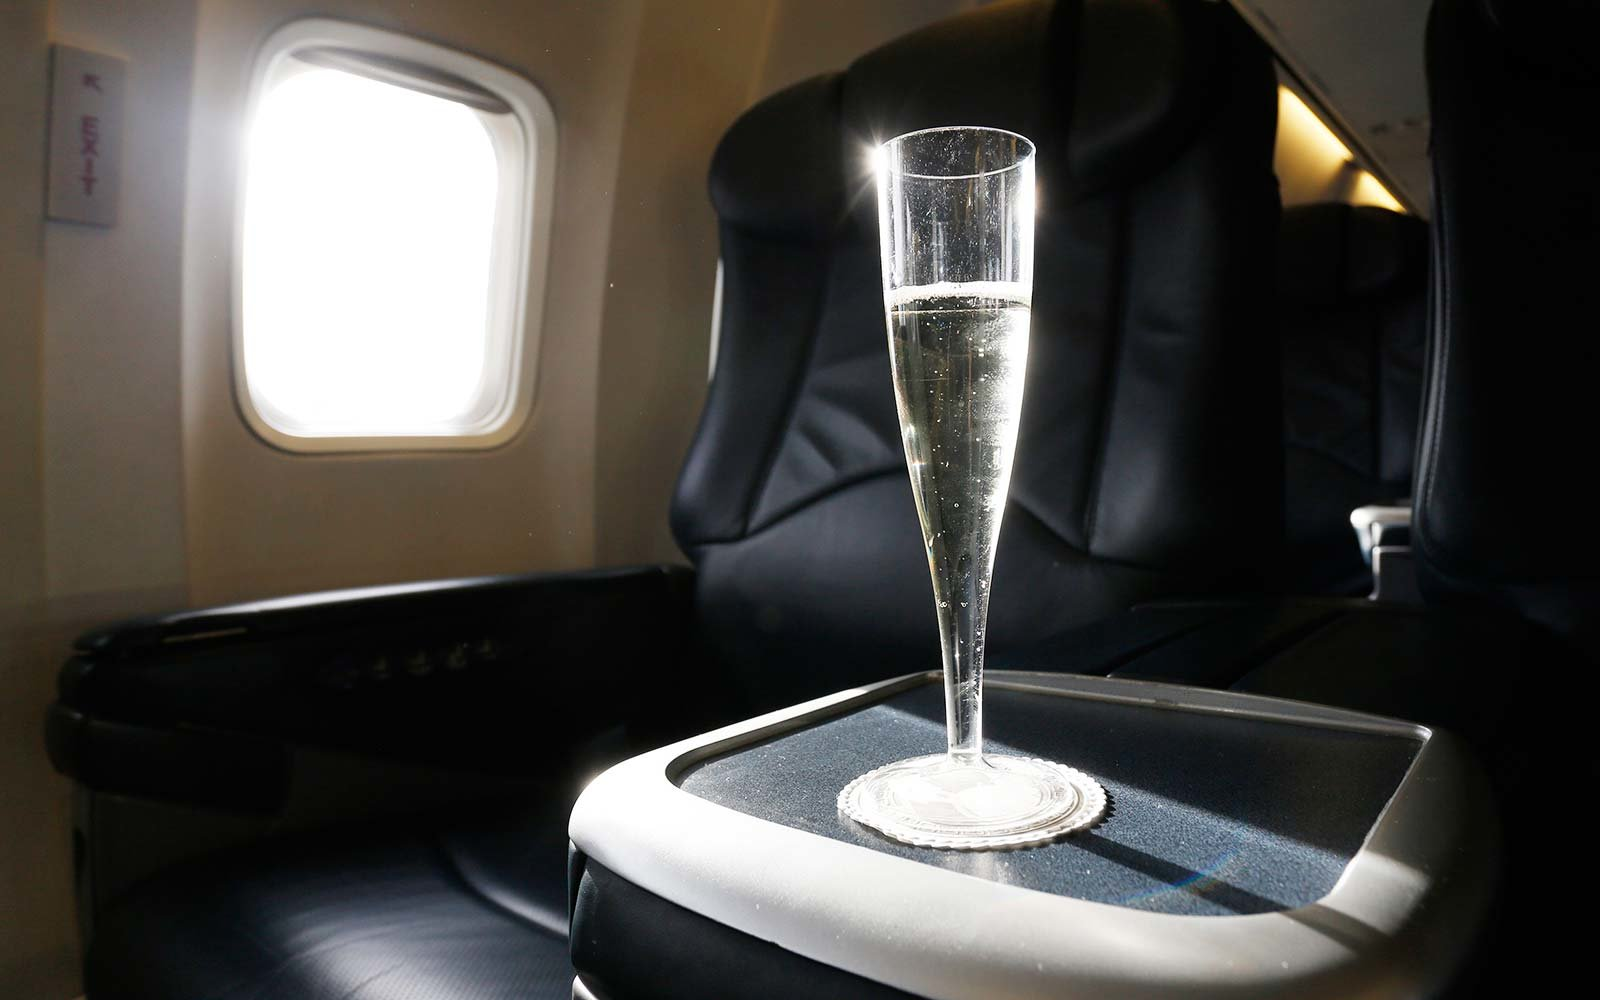 Sunwing flyer sues because he got sparkling wine not champagne